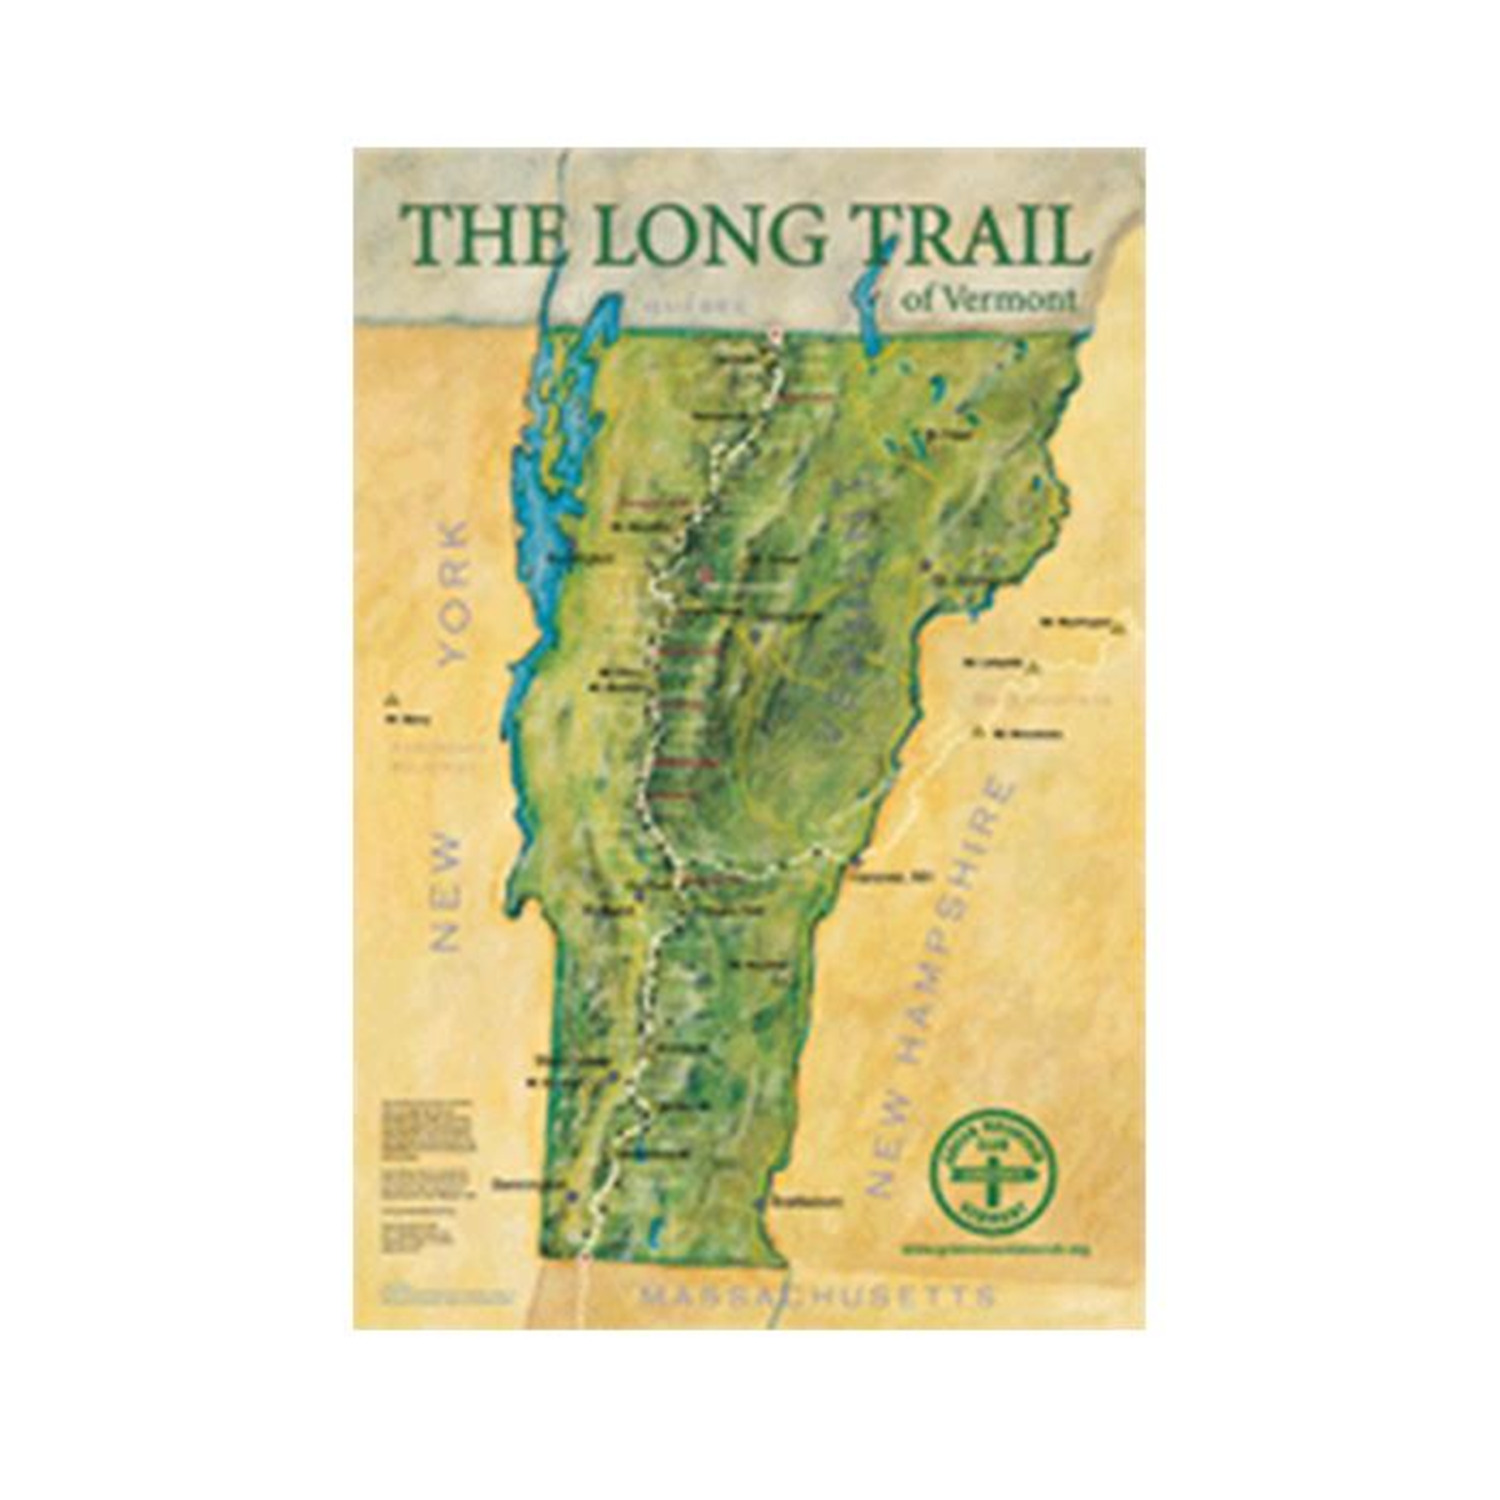 Vermont\'s Long Trail - Poster - $28.99 | OJCommerce